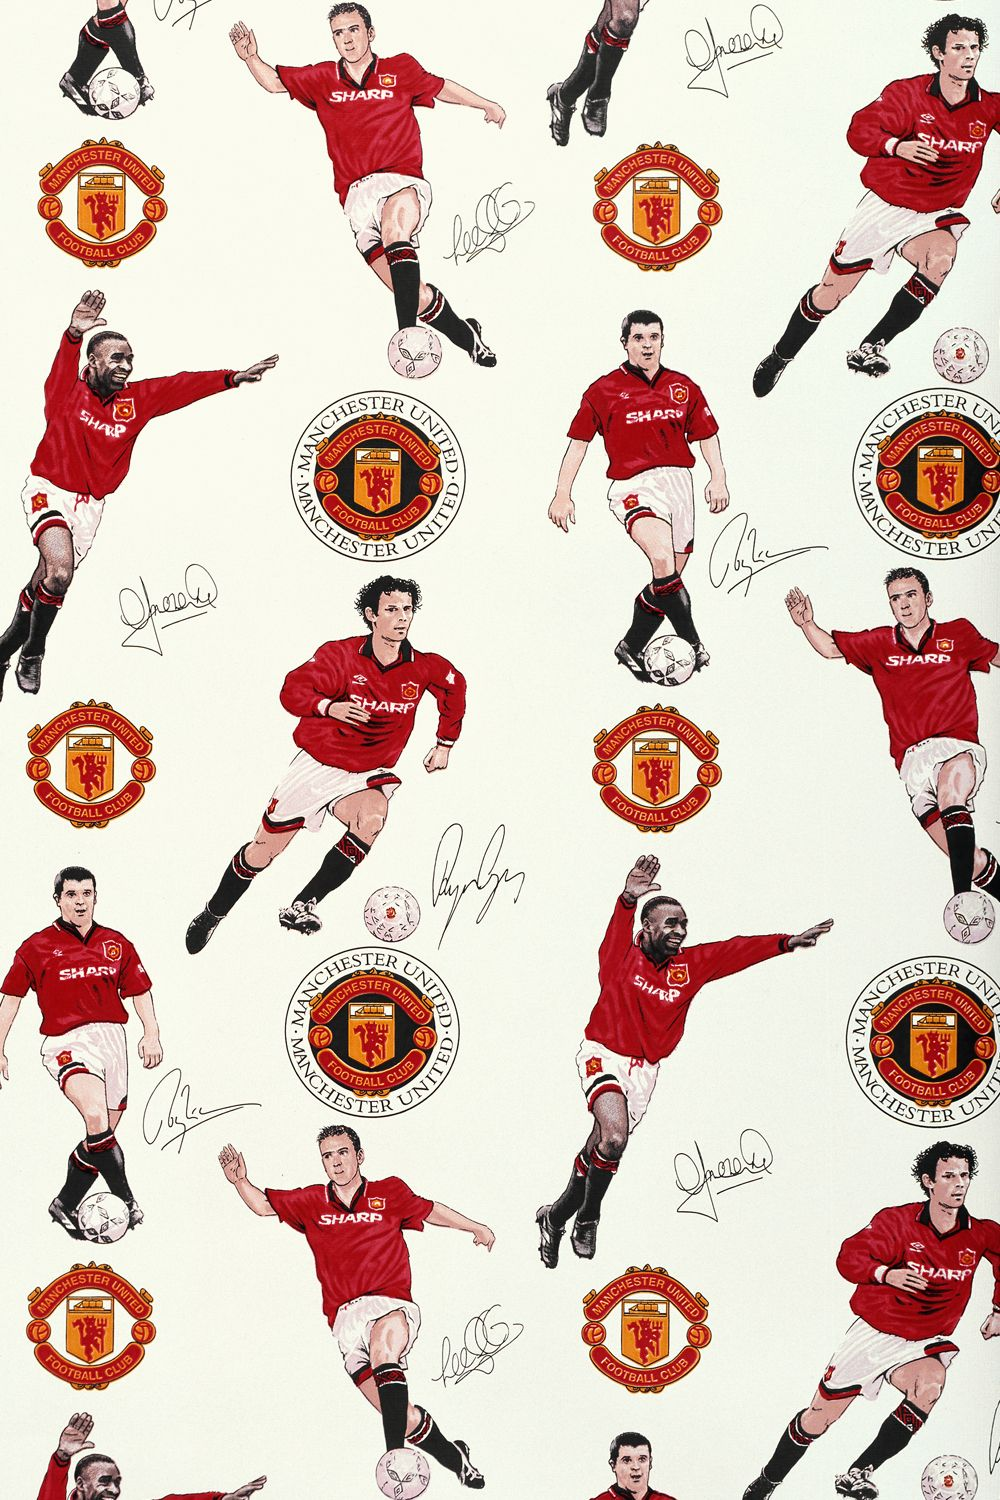 manchester united wallpaper in 2020 | Manchester united ...